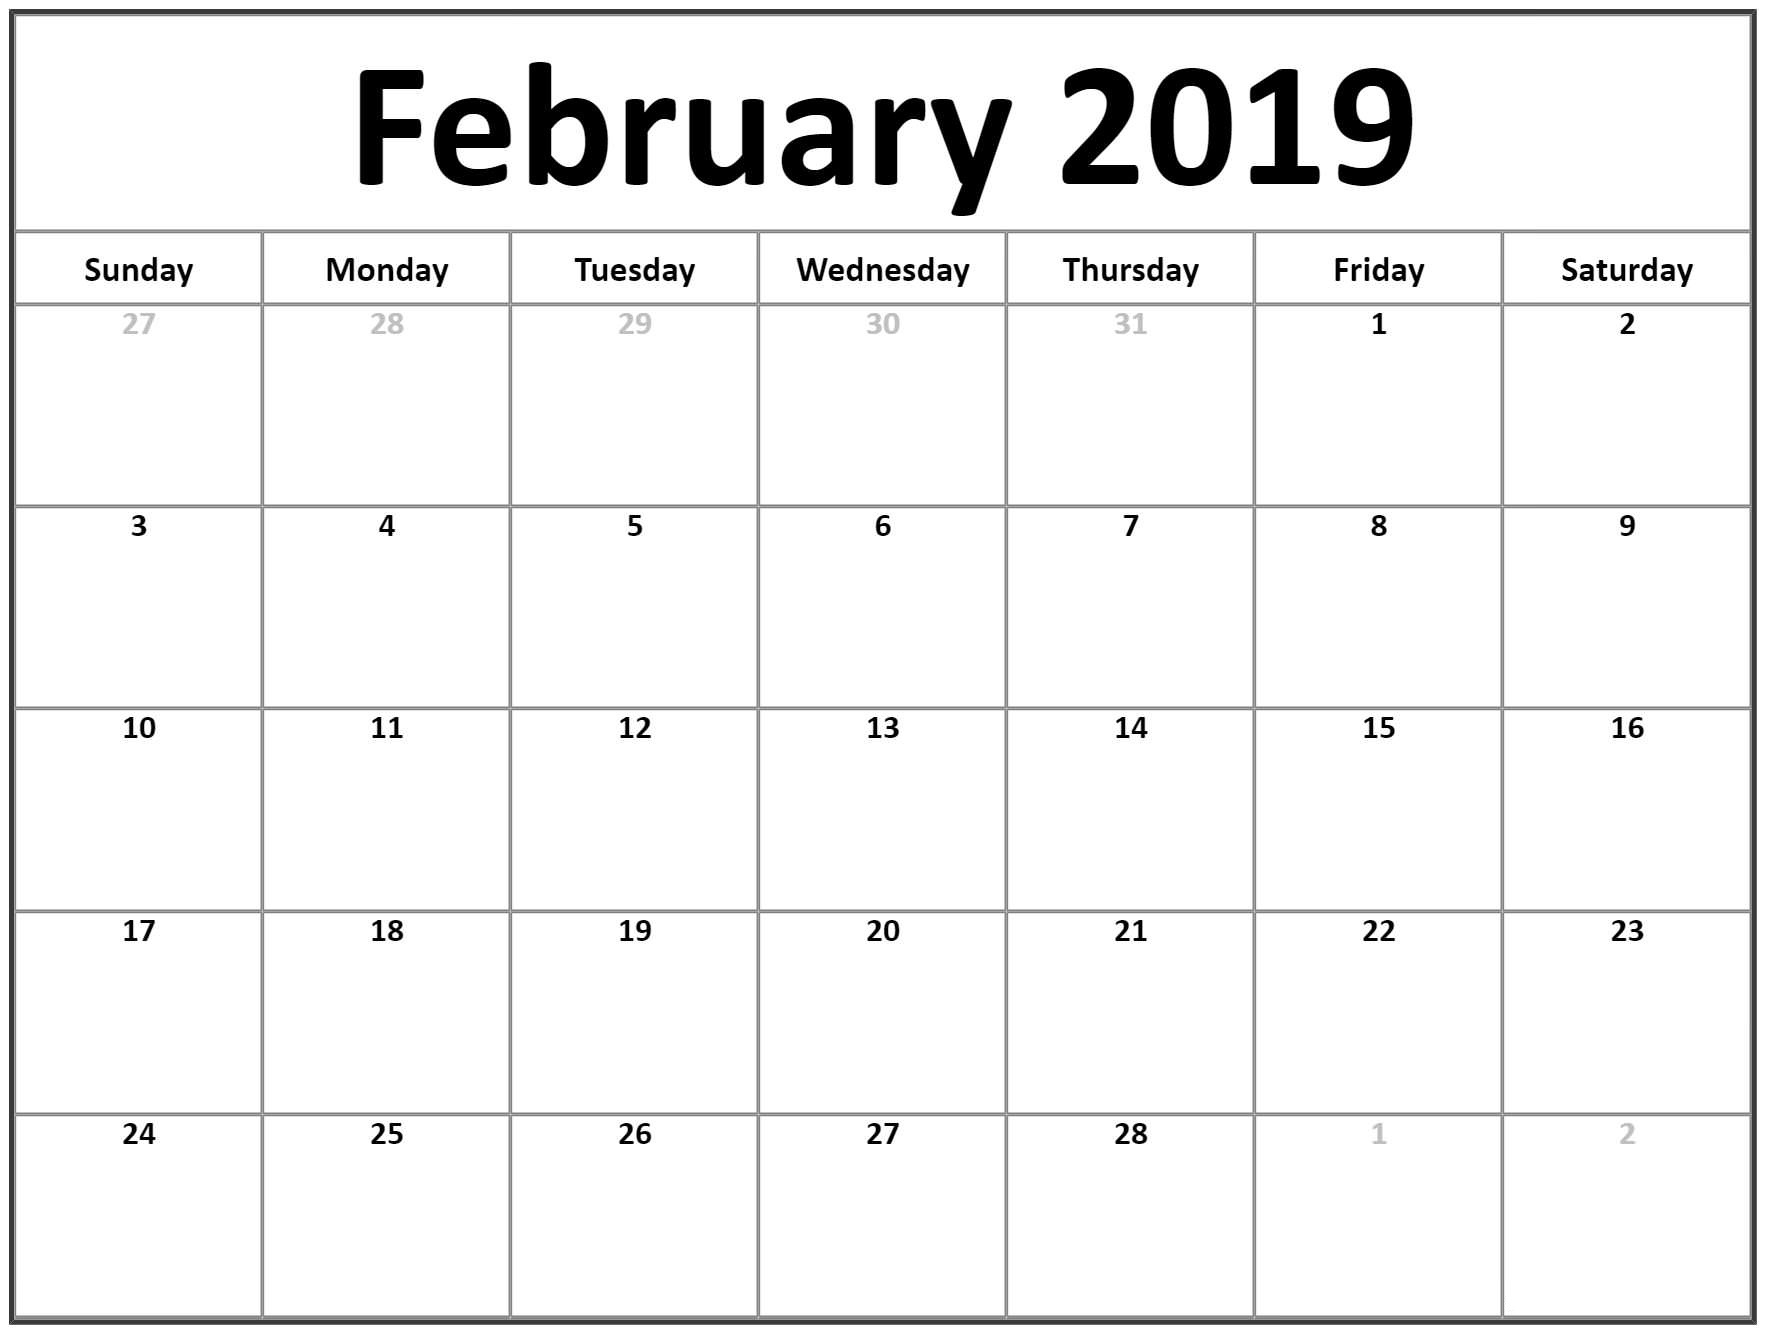 february 2019 calendar calendar template printable::February 2019 Calendar with Notes